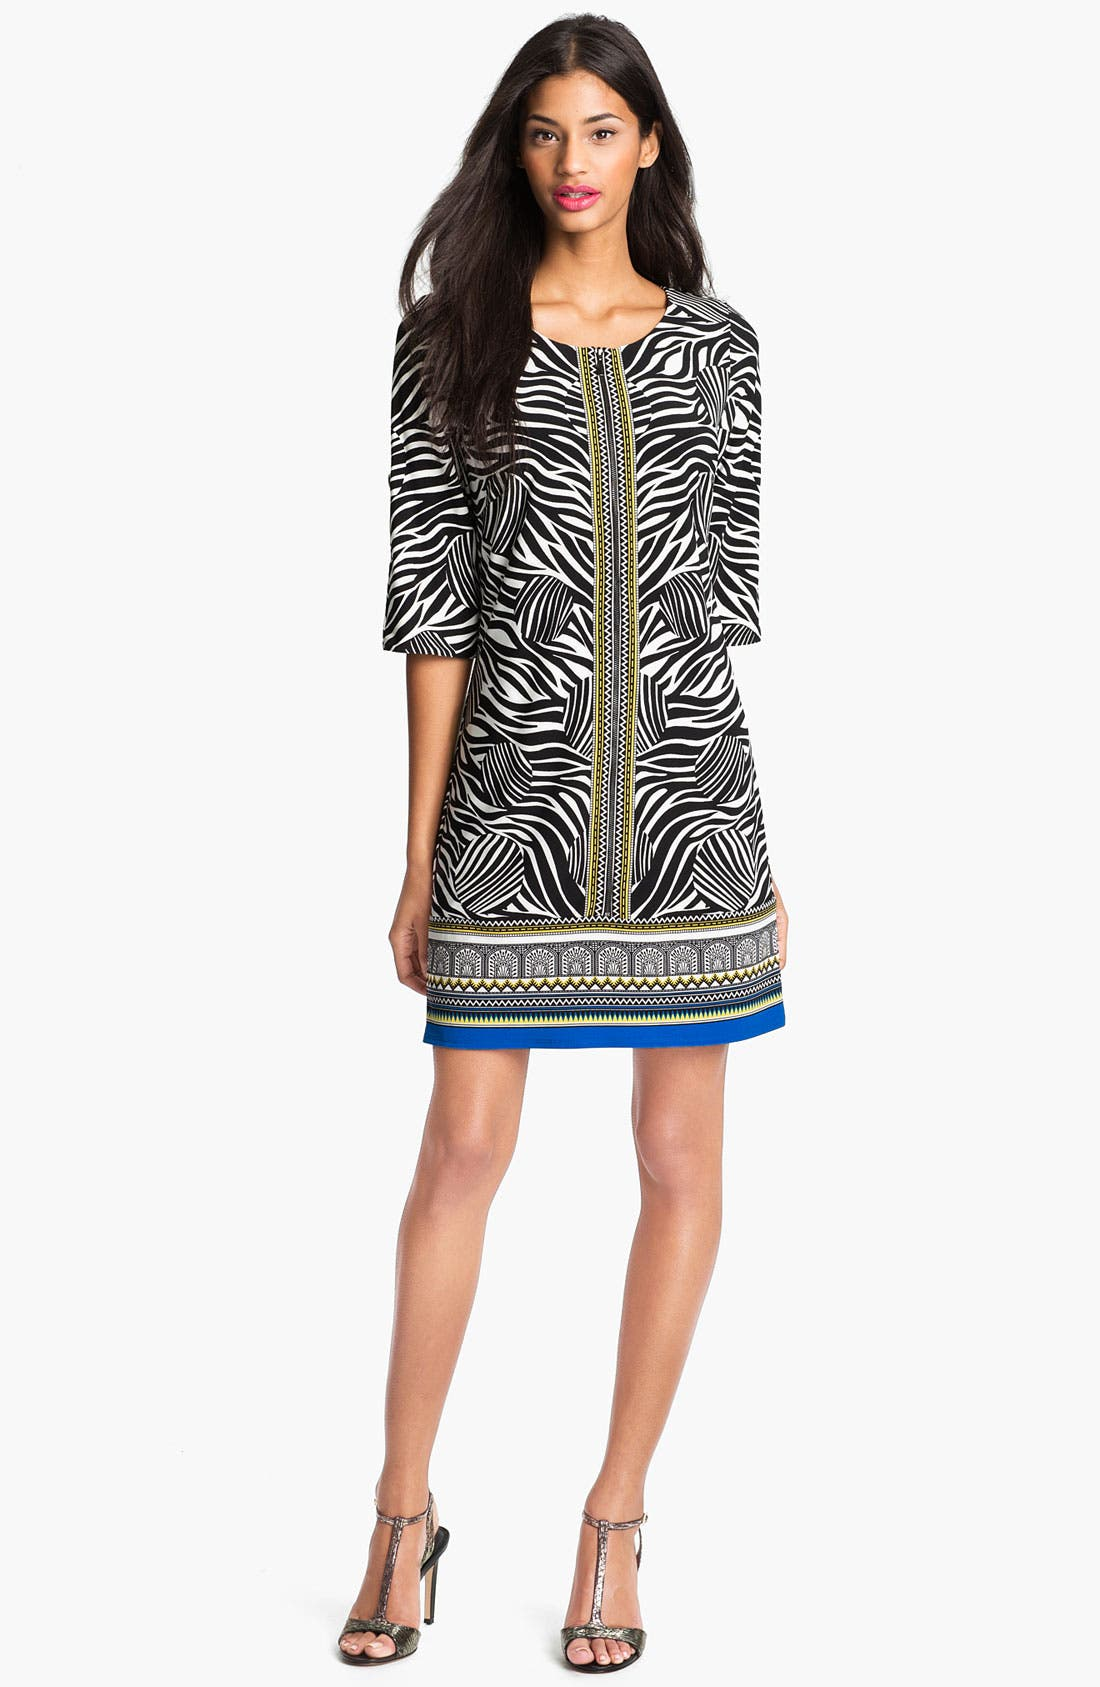 Alternate Image 1 Selected - Laundry by Shelli Segal Print Jersey Dress